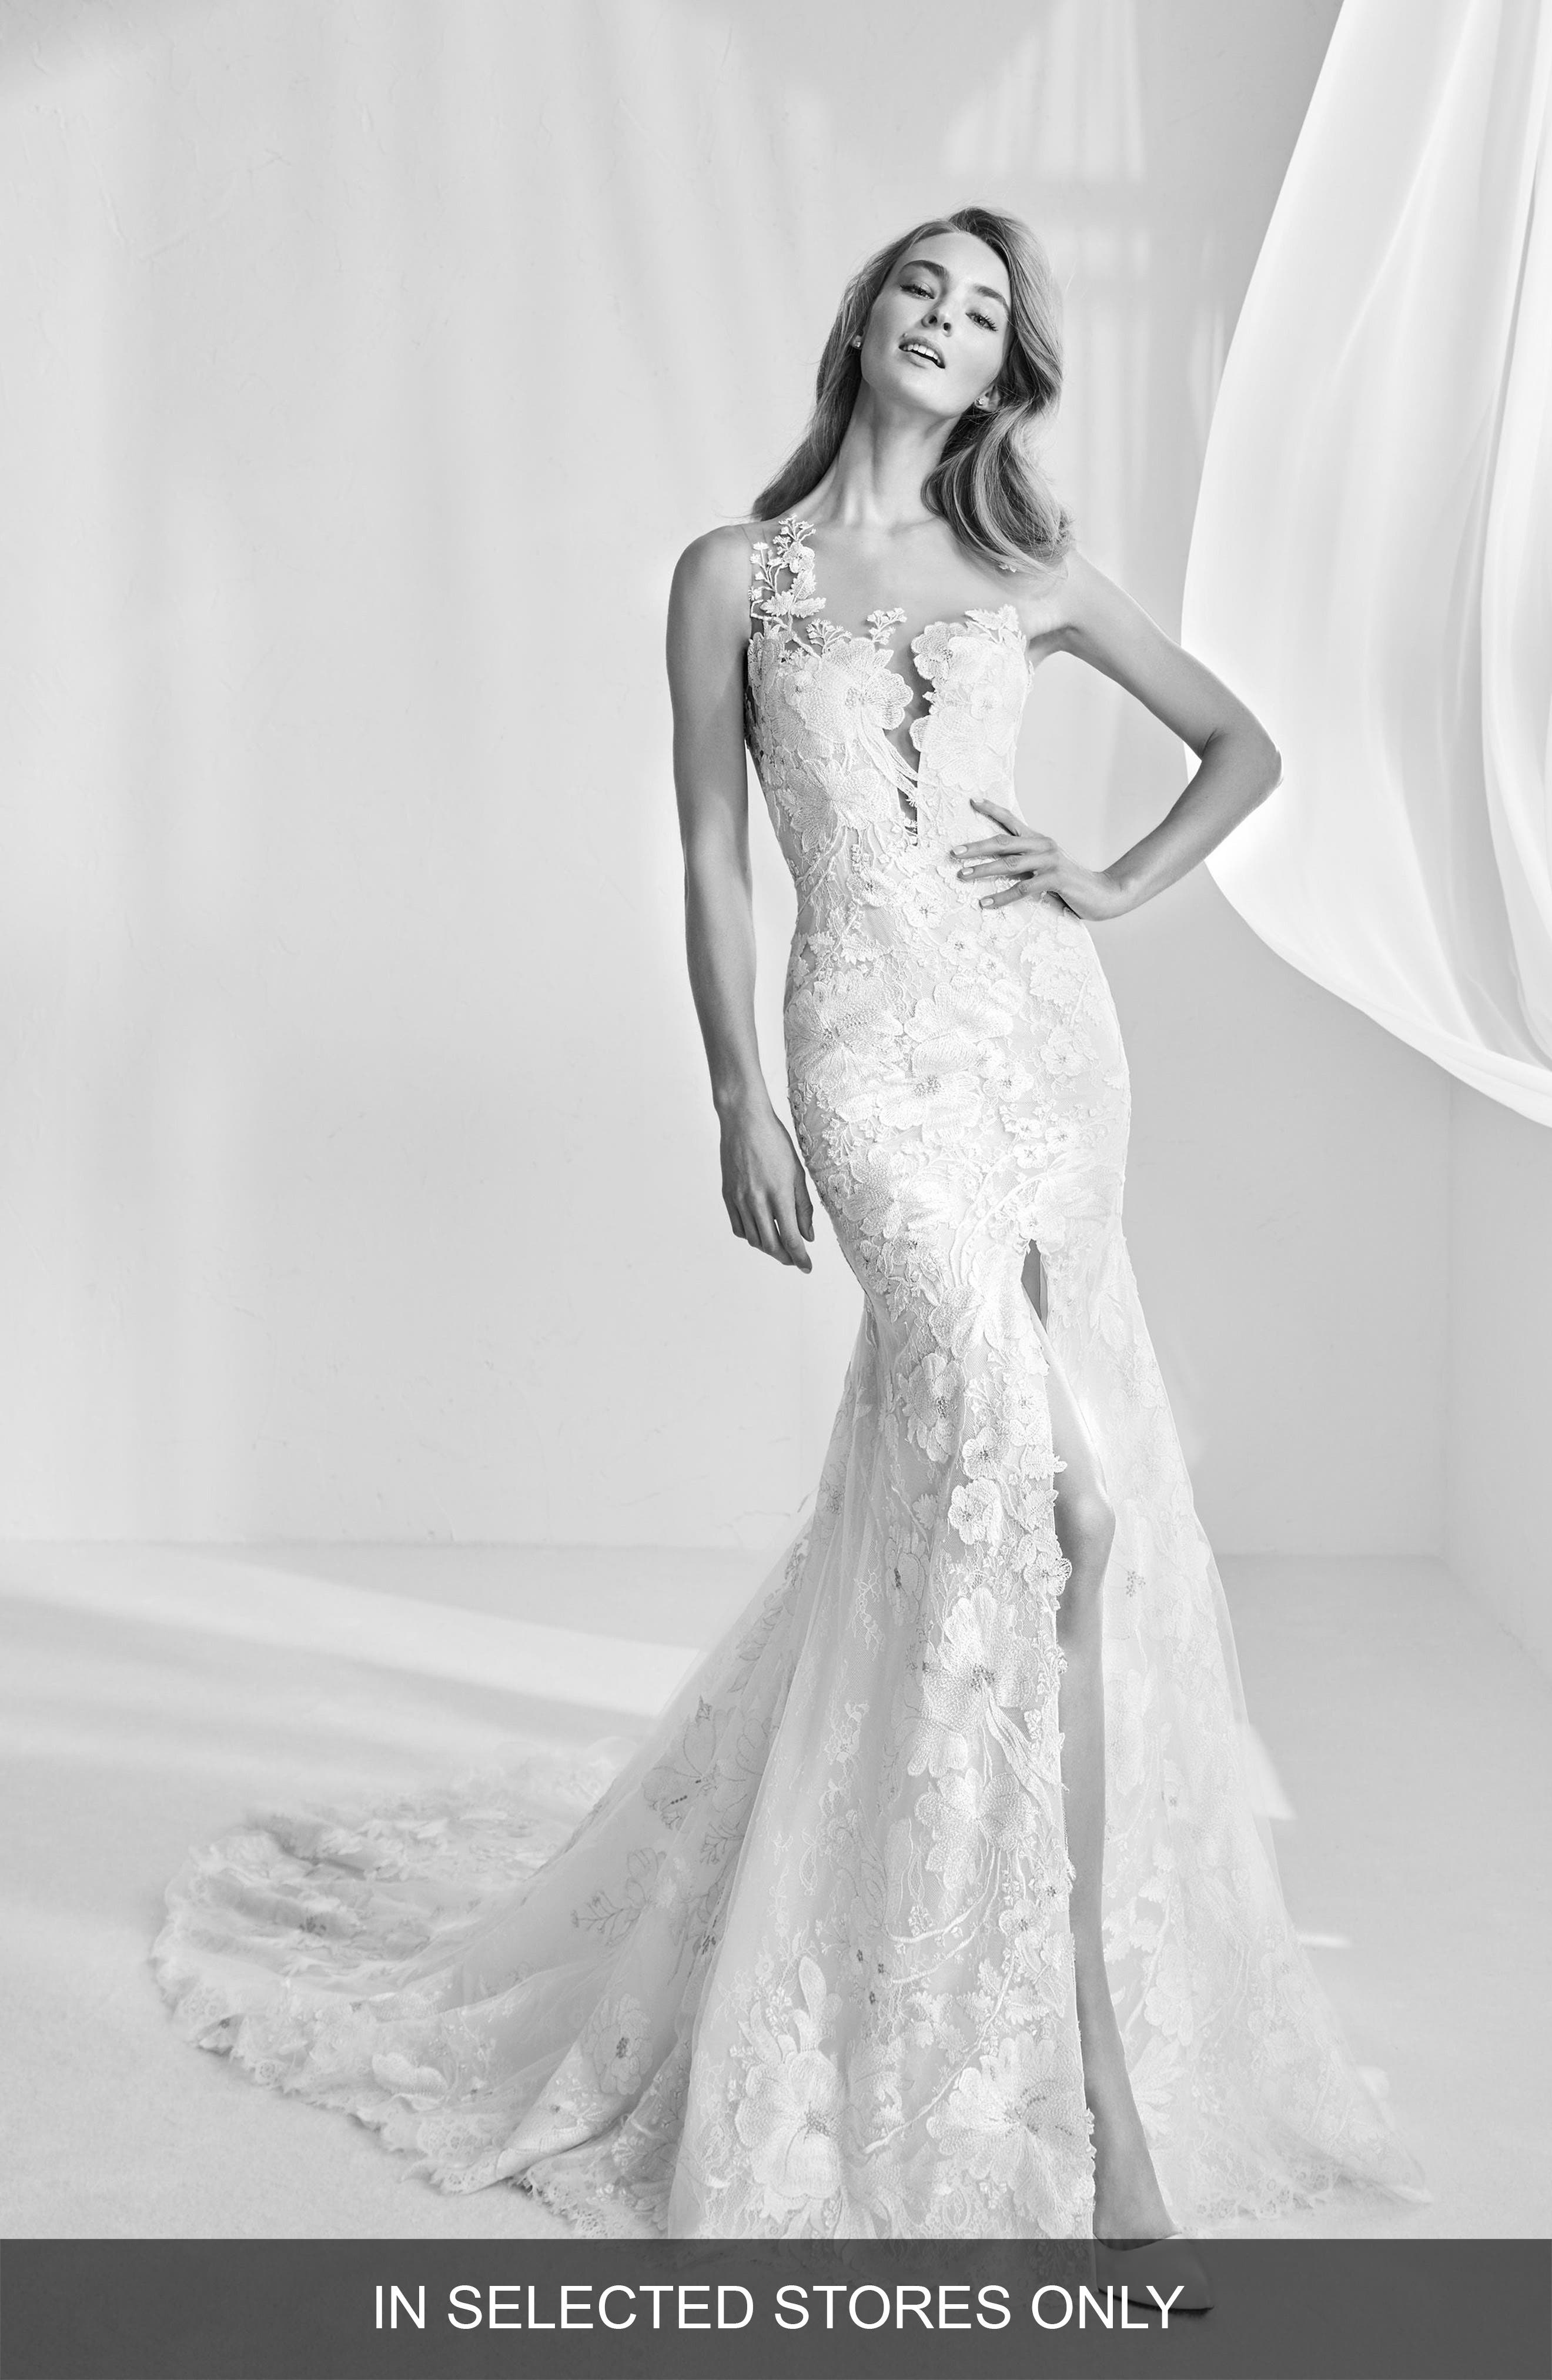 Ranisa Embroidered Lace Mermaid Gown,                             Main thumbnail 1, color,                             Off Wh/ Crst